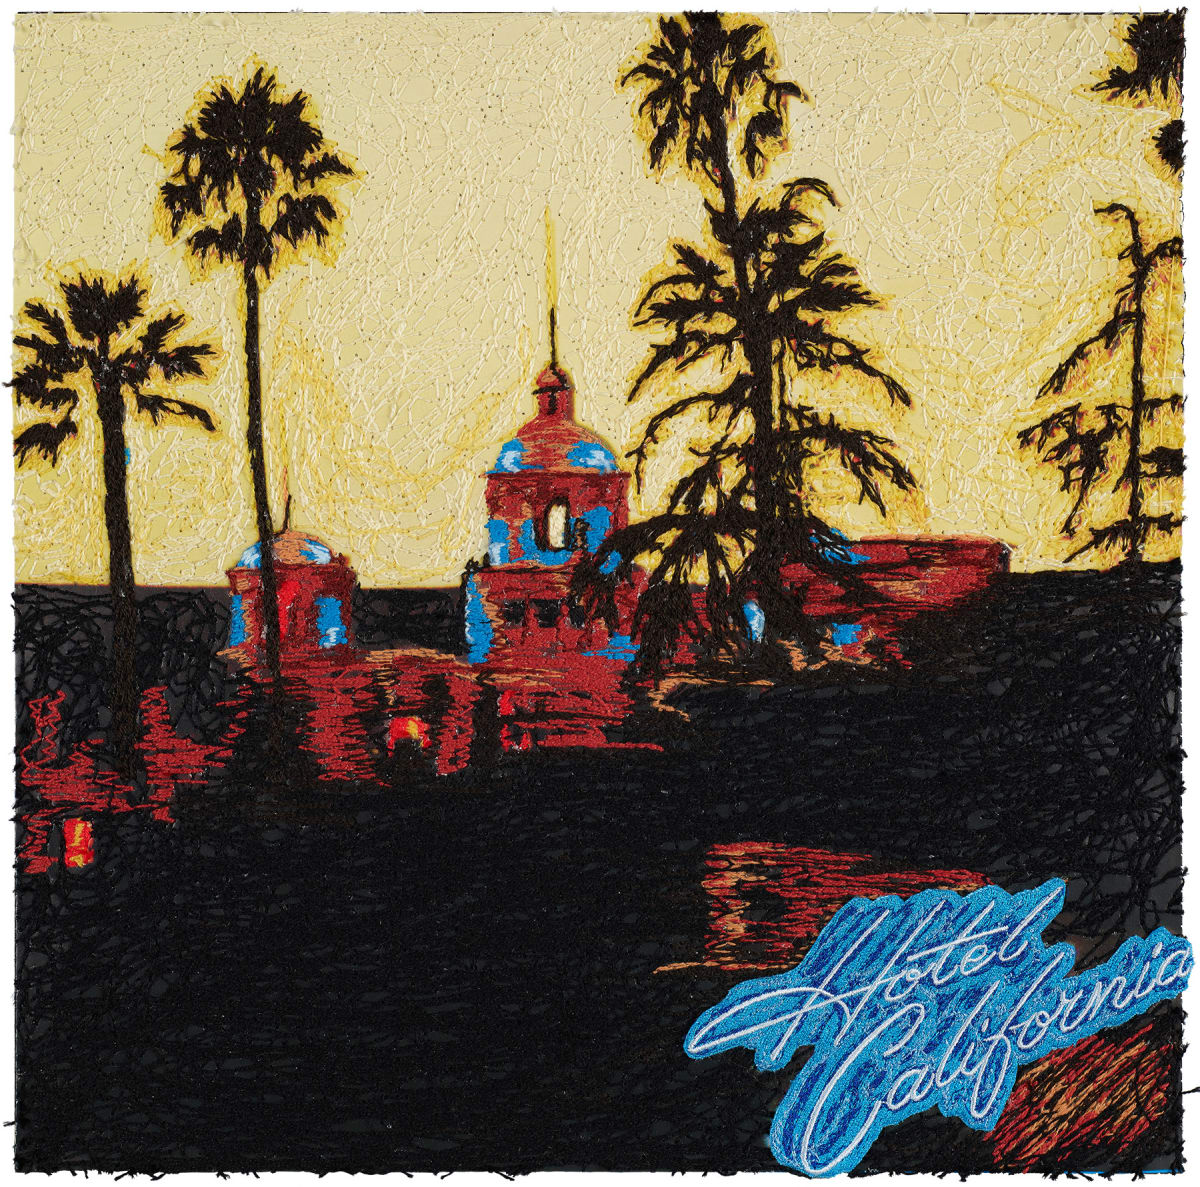 Stephen Wilson, Hotel California, The Eagles, 2019